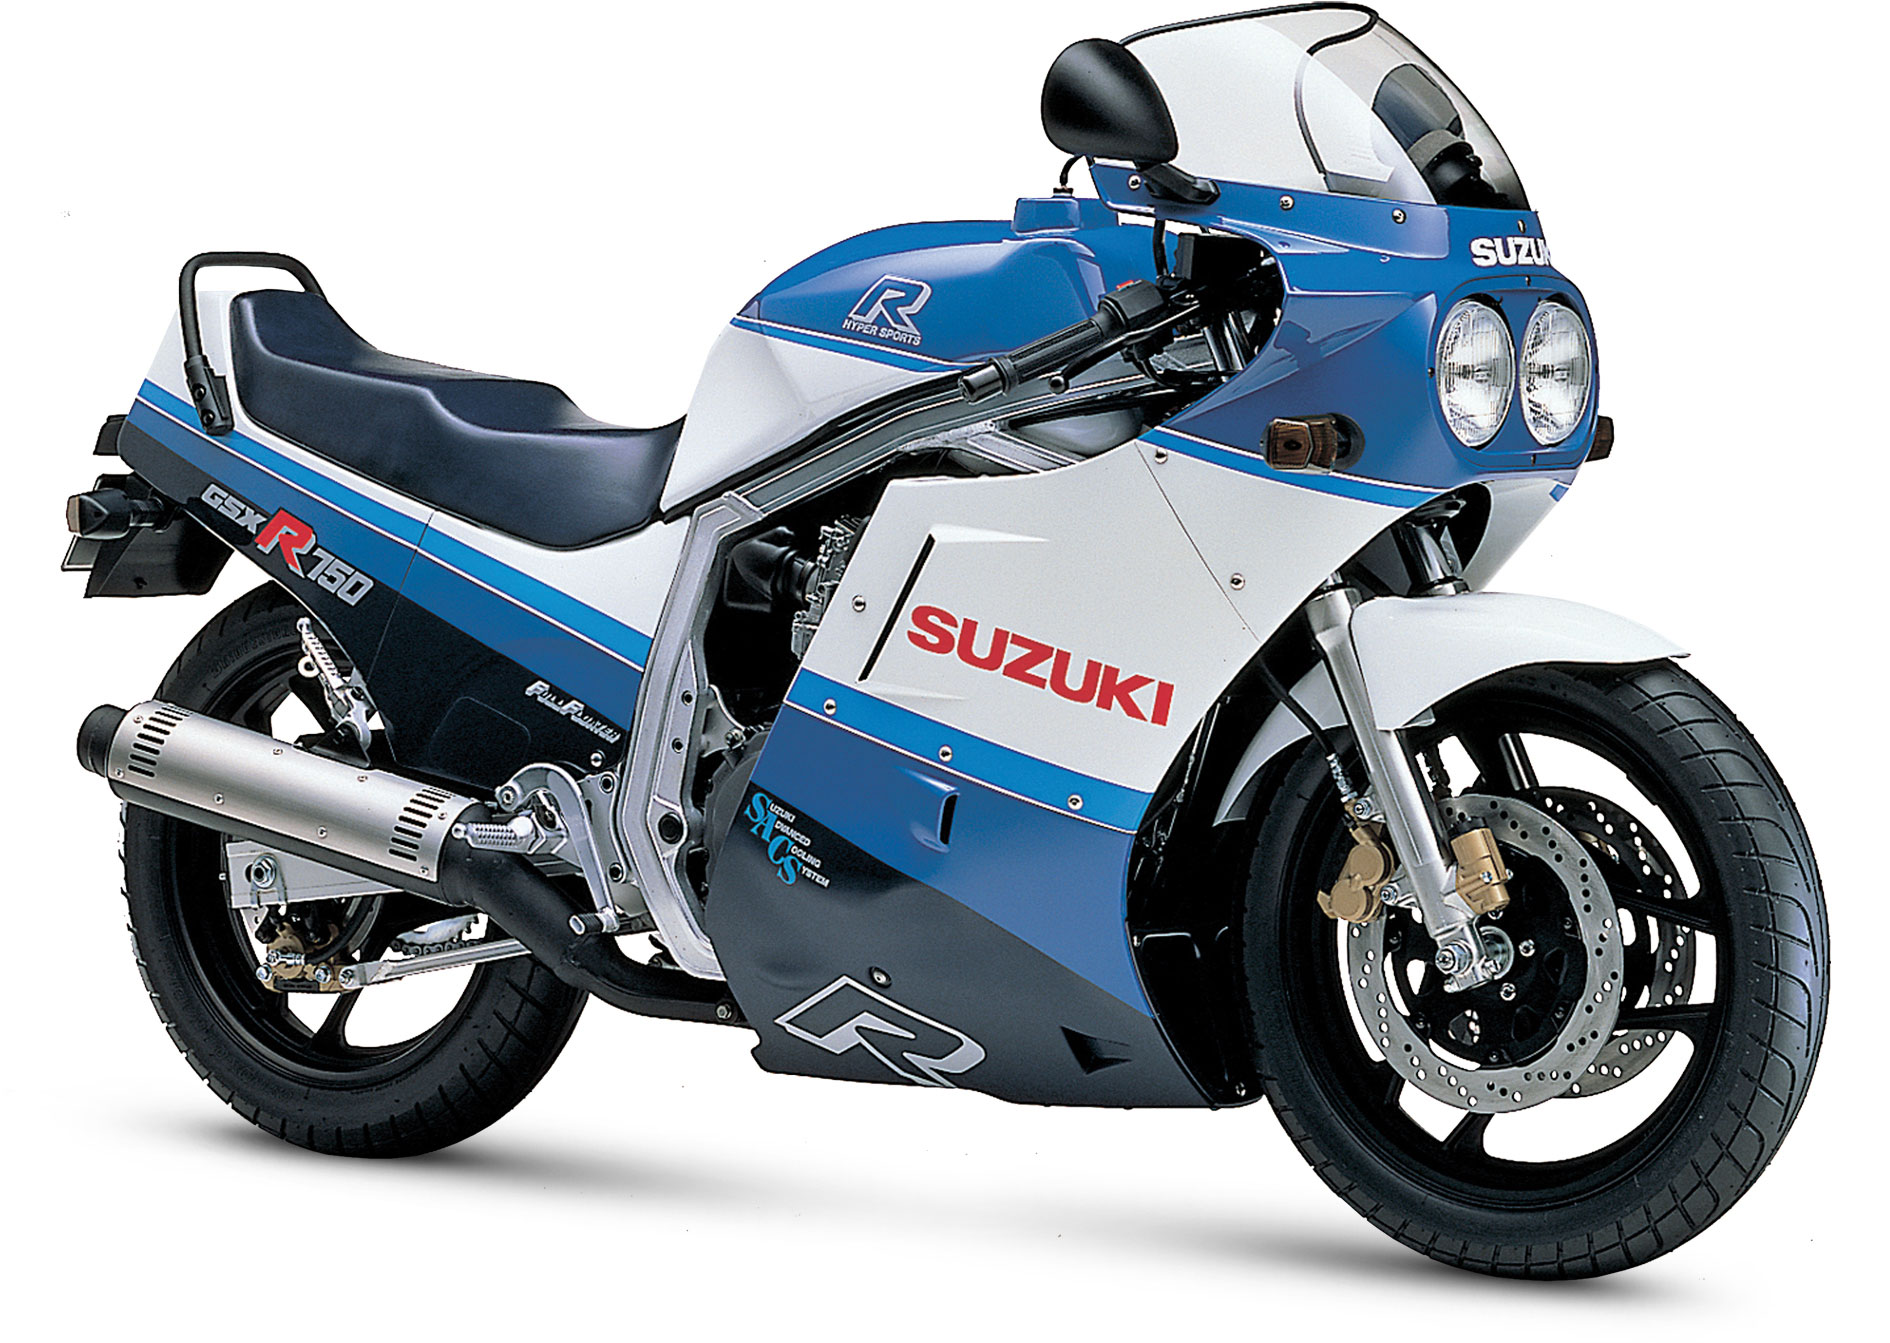 1991 Suzuki Gsxr Images Of Home Design 1988 750 Slingshot Wiring Diagram Report New Gsx R750 Coming But No R600